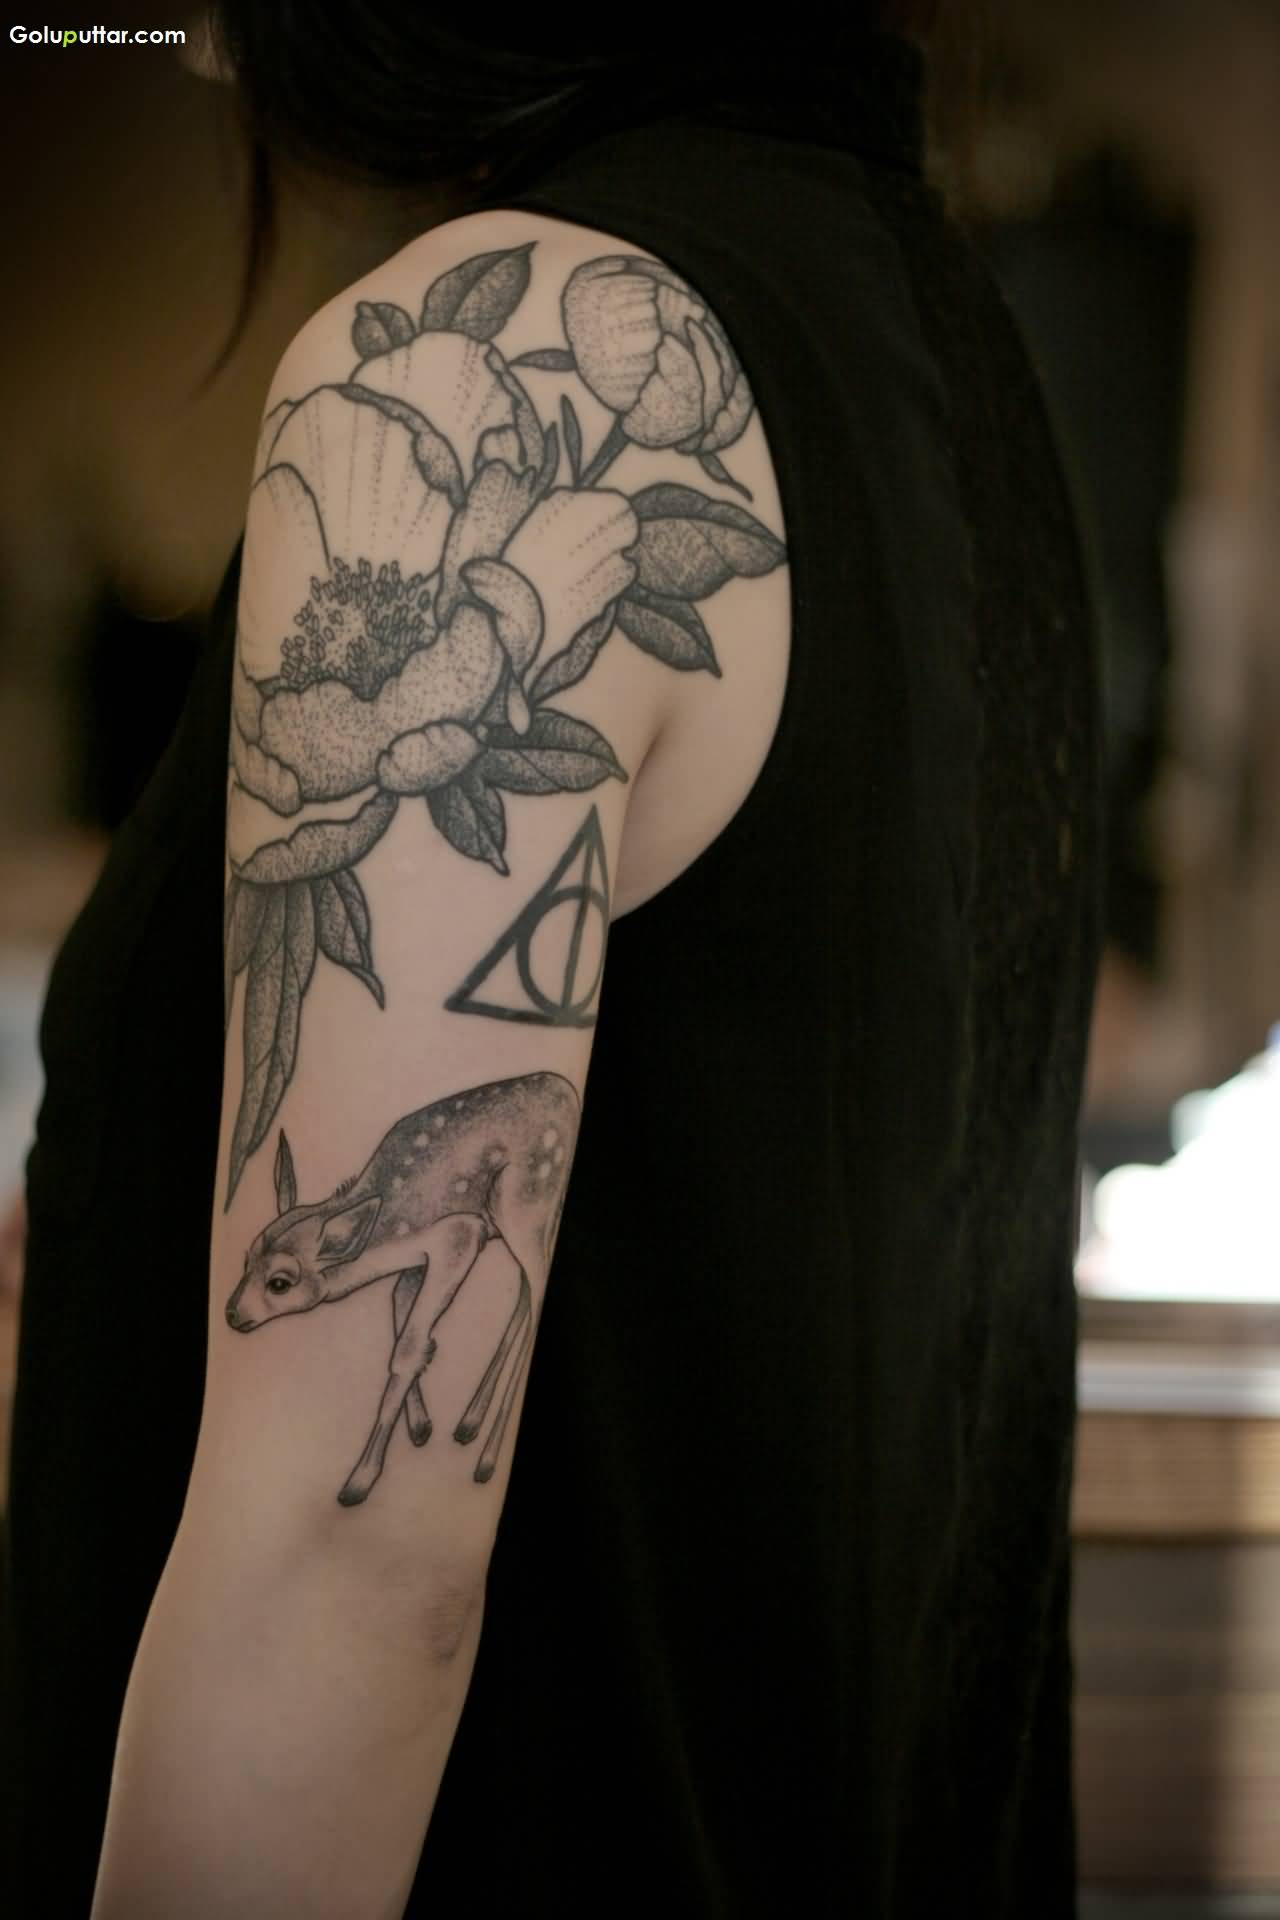 Awesome arm tattoo of lotus flower and deer for women photos and awesome arm tattoo of lotus flower and deer for women izmirmasajfo Choice Image